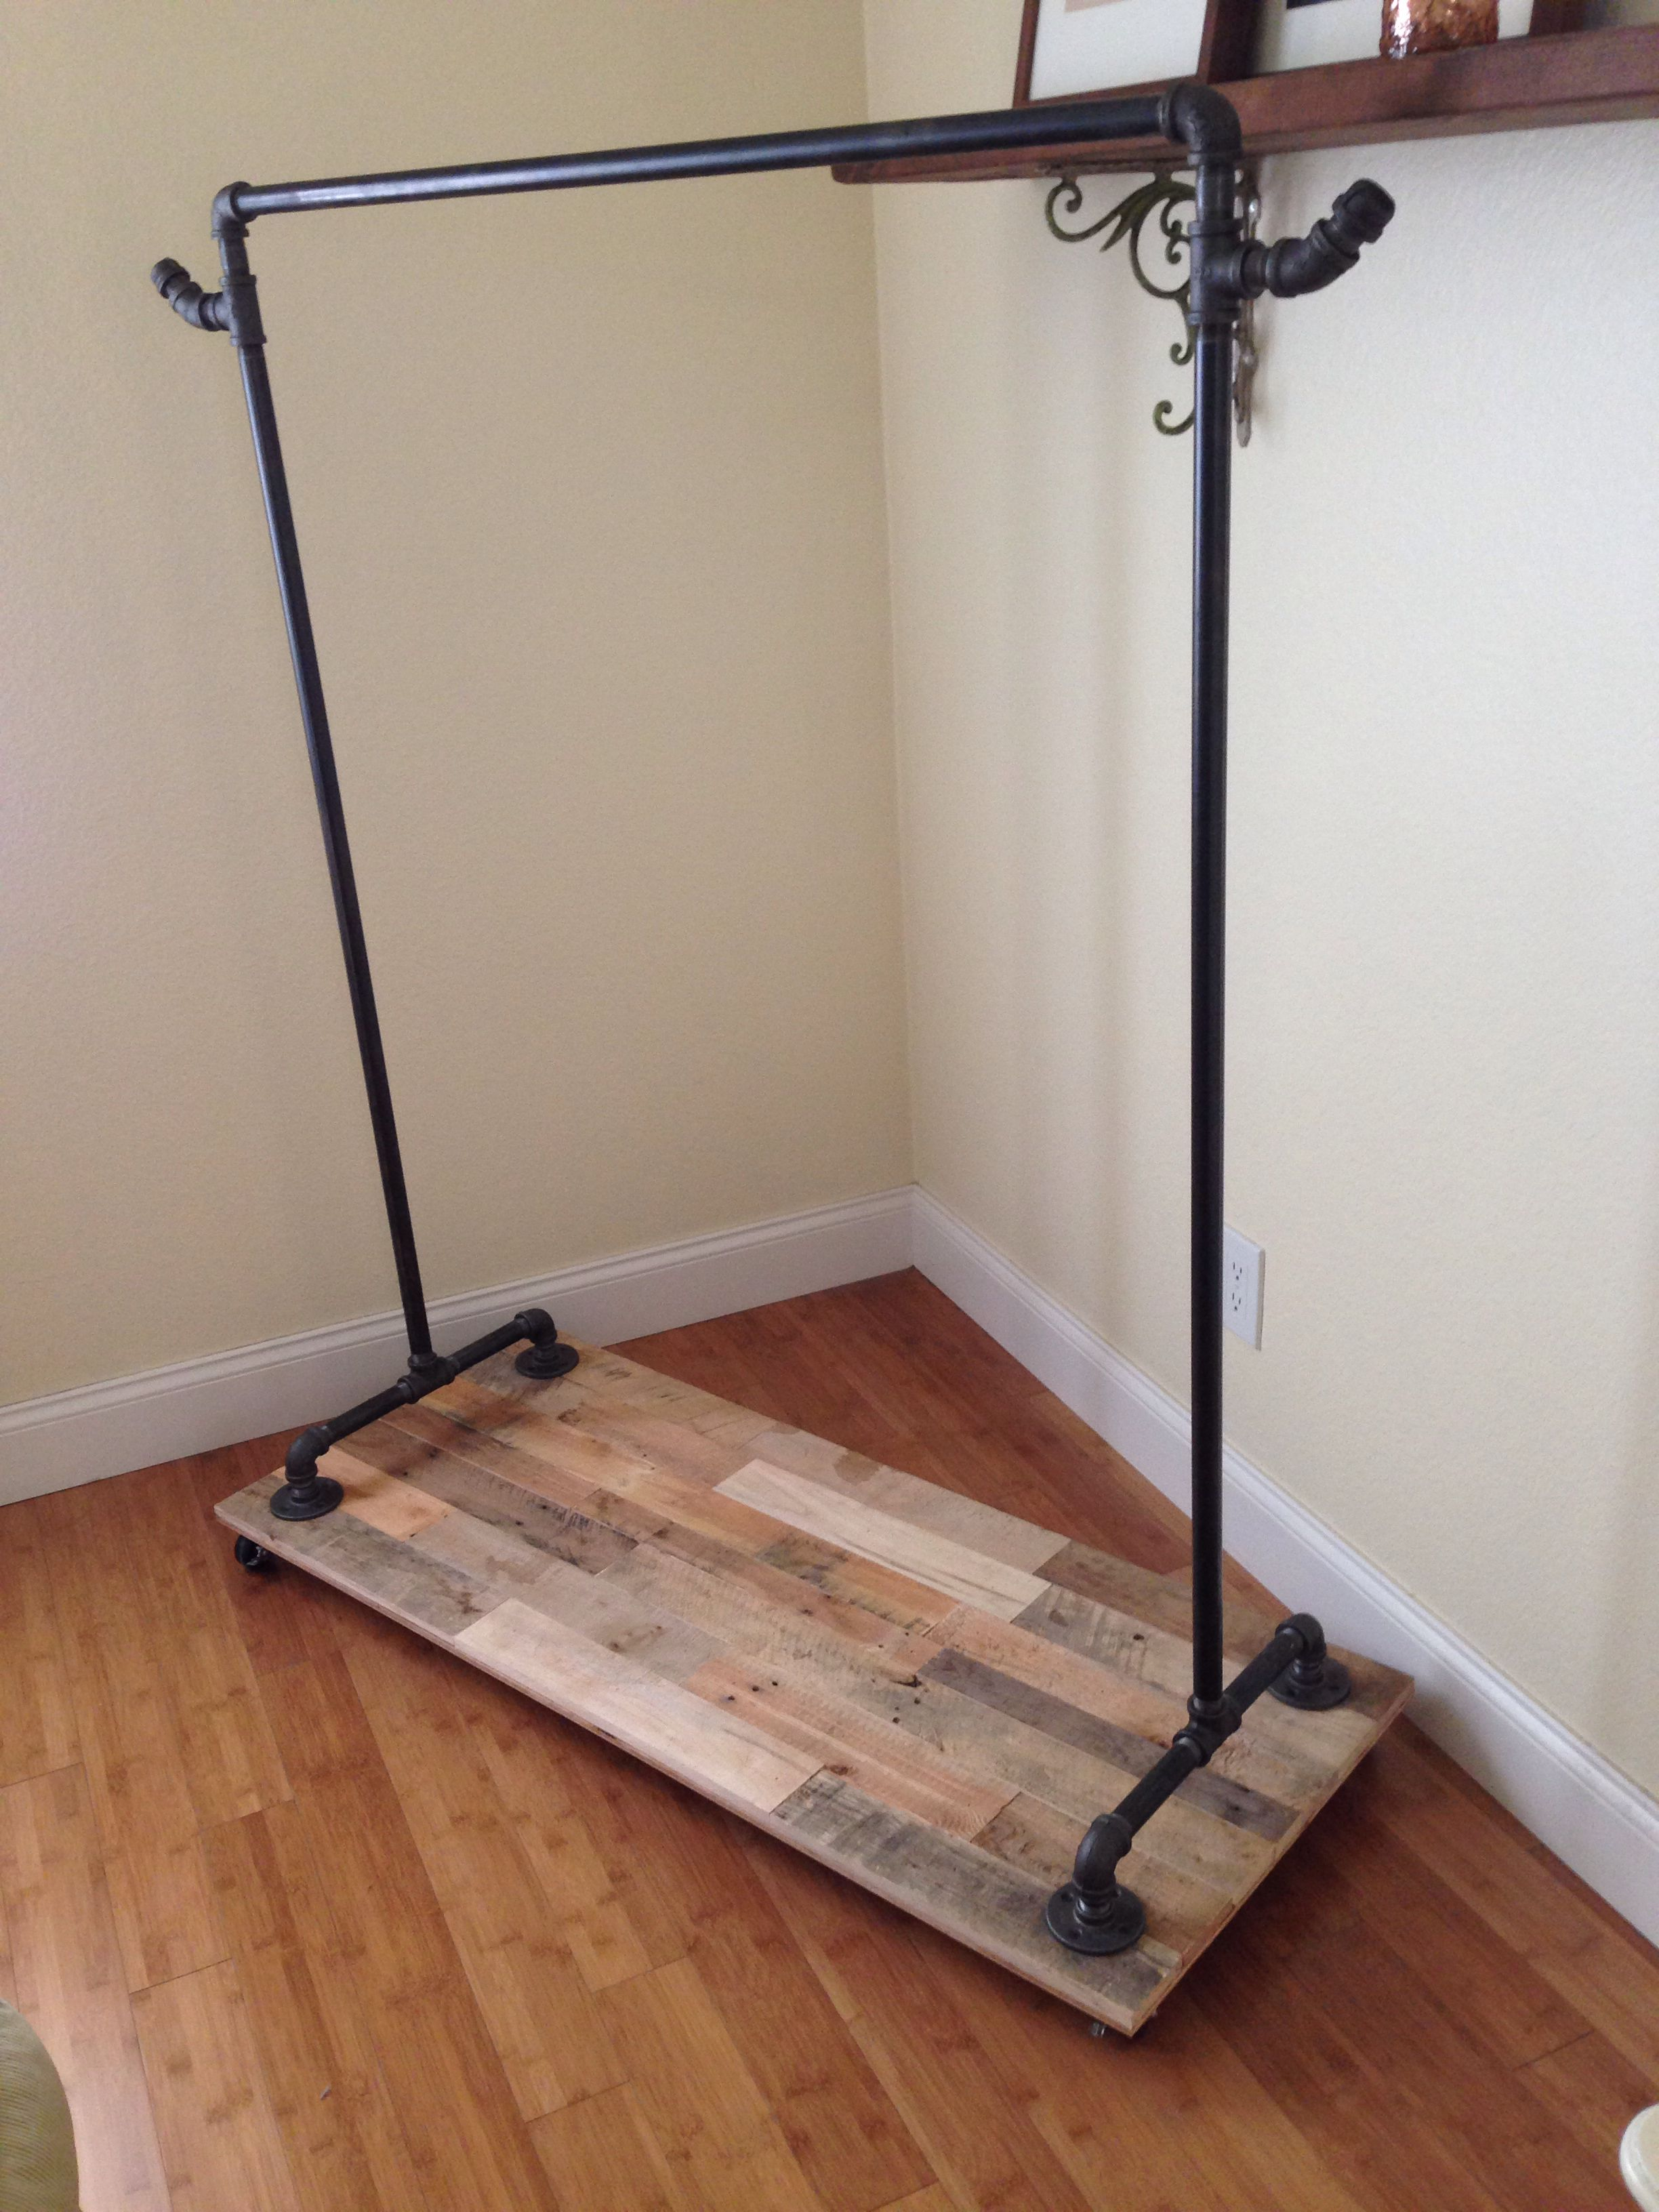 Pipe Clothing Rack With Reclaimed Pallet Base On Wheels